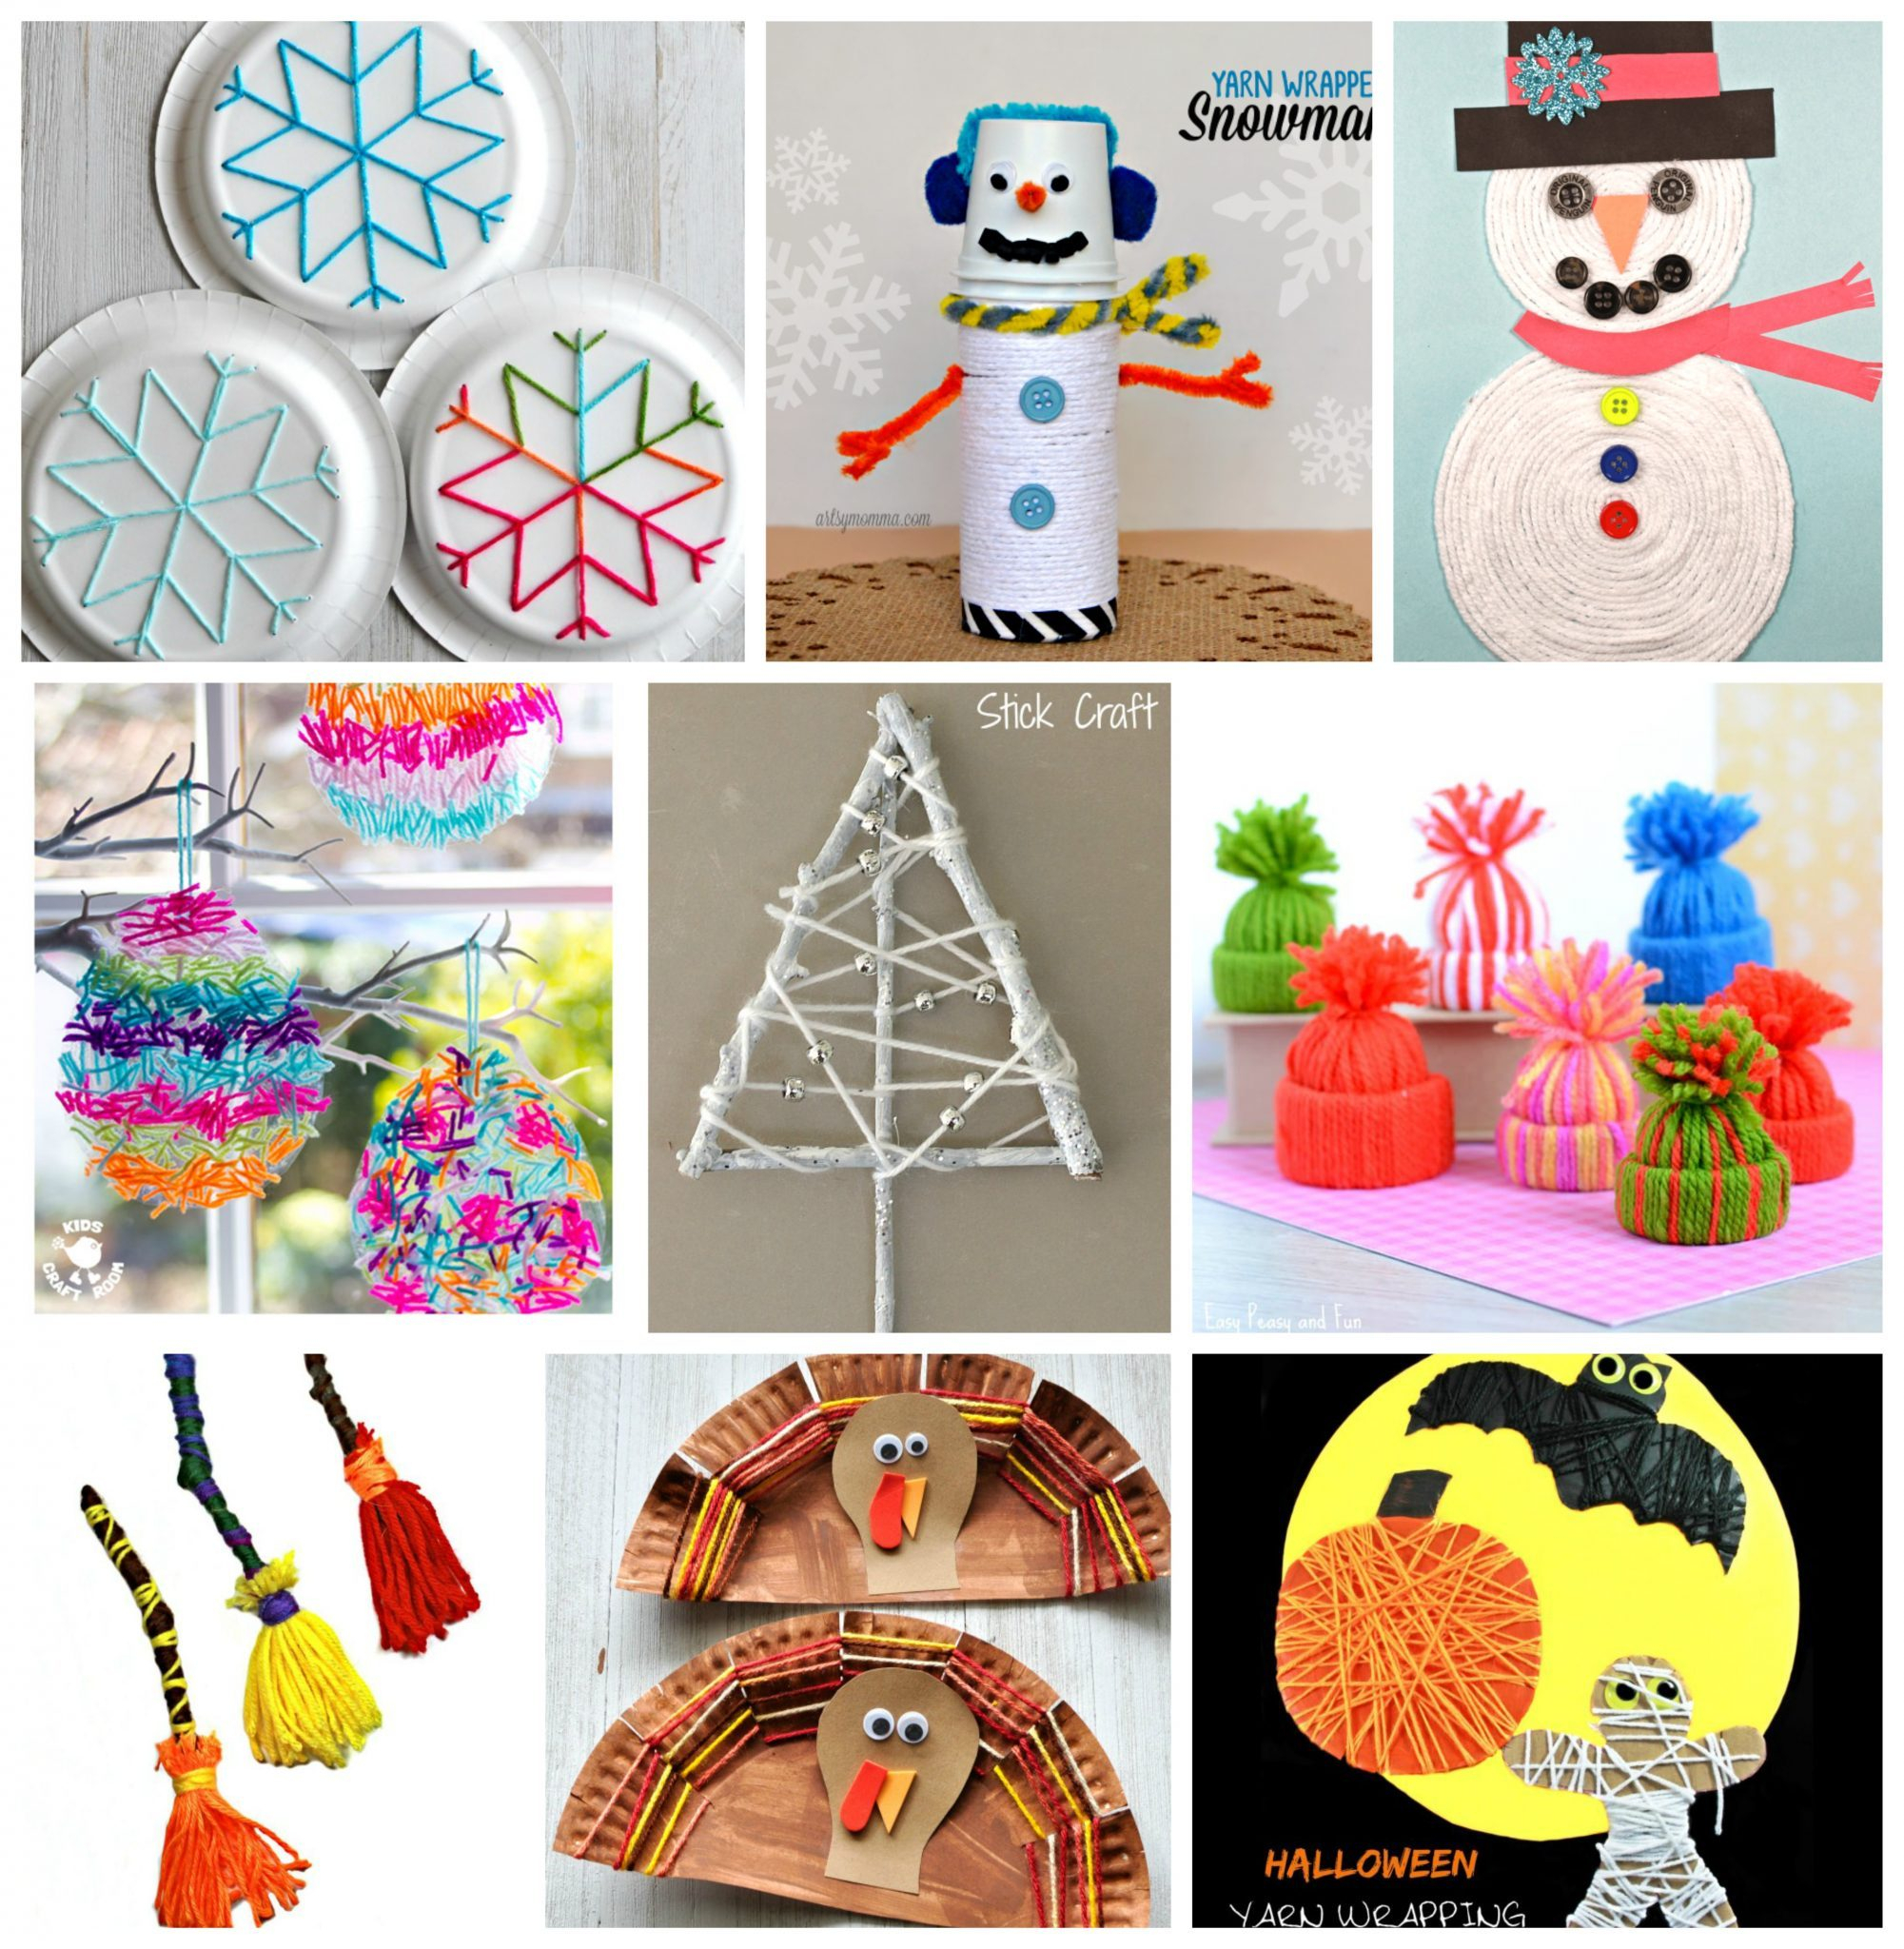 10 Great Easy Arts And Craft Ideas 40 fun fantastic yarn crafts the pinterested parent 2021